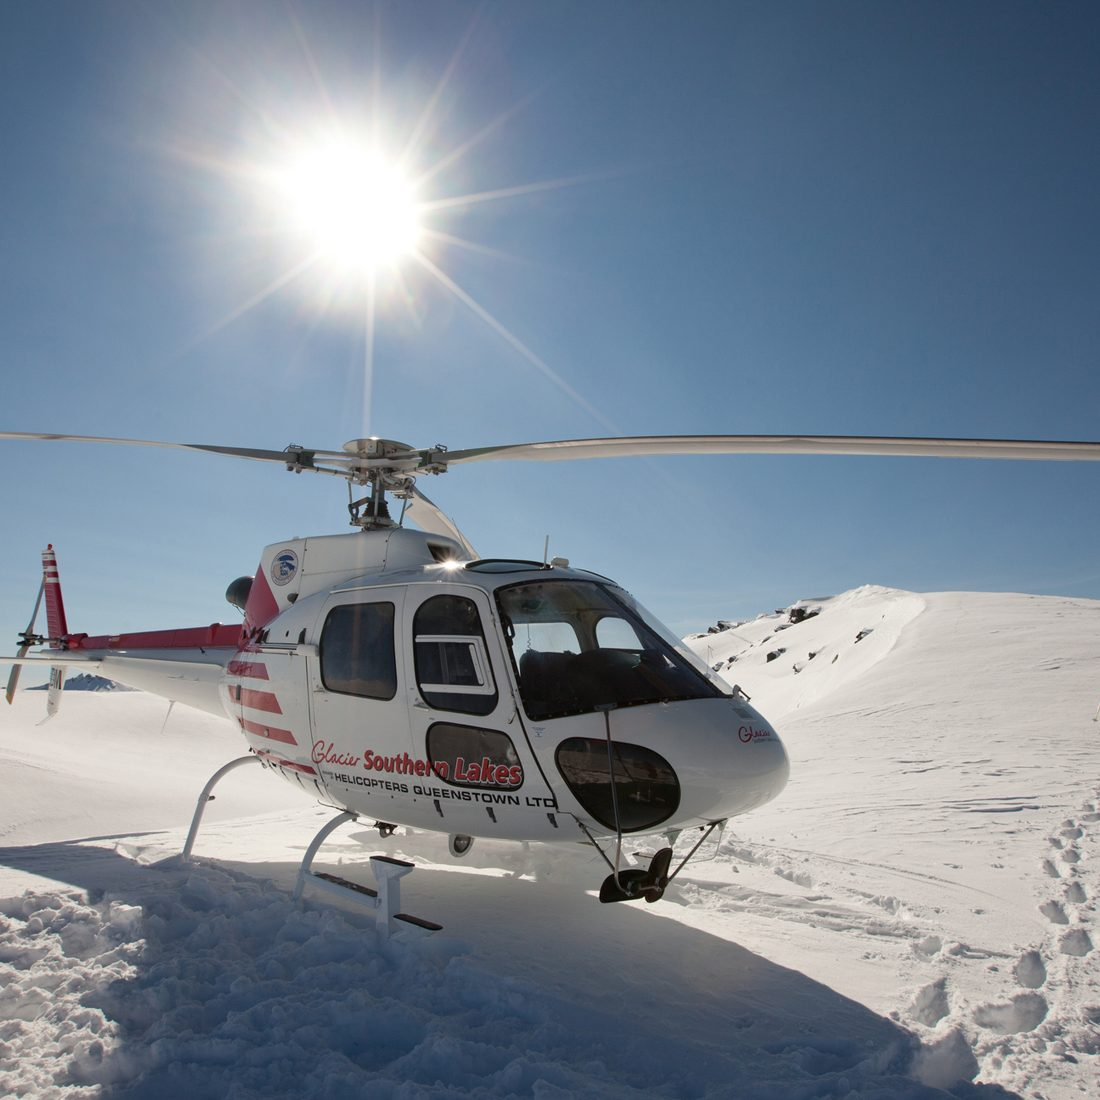 """Wanaka, New Zealand - August 23rd, 2012: Photo of helicopter taking off on mountain ridge whilst heliskiing with Southern Lakes Heliski, Wanaka, New Zealand."""